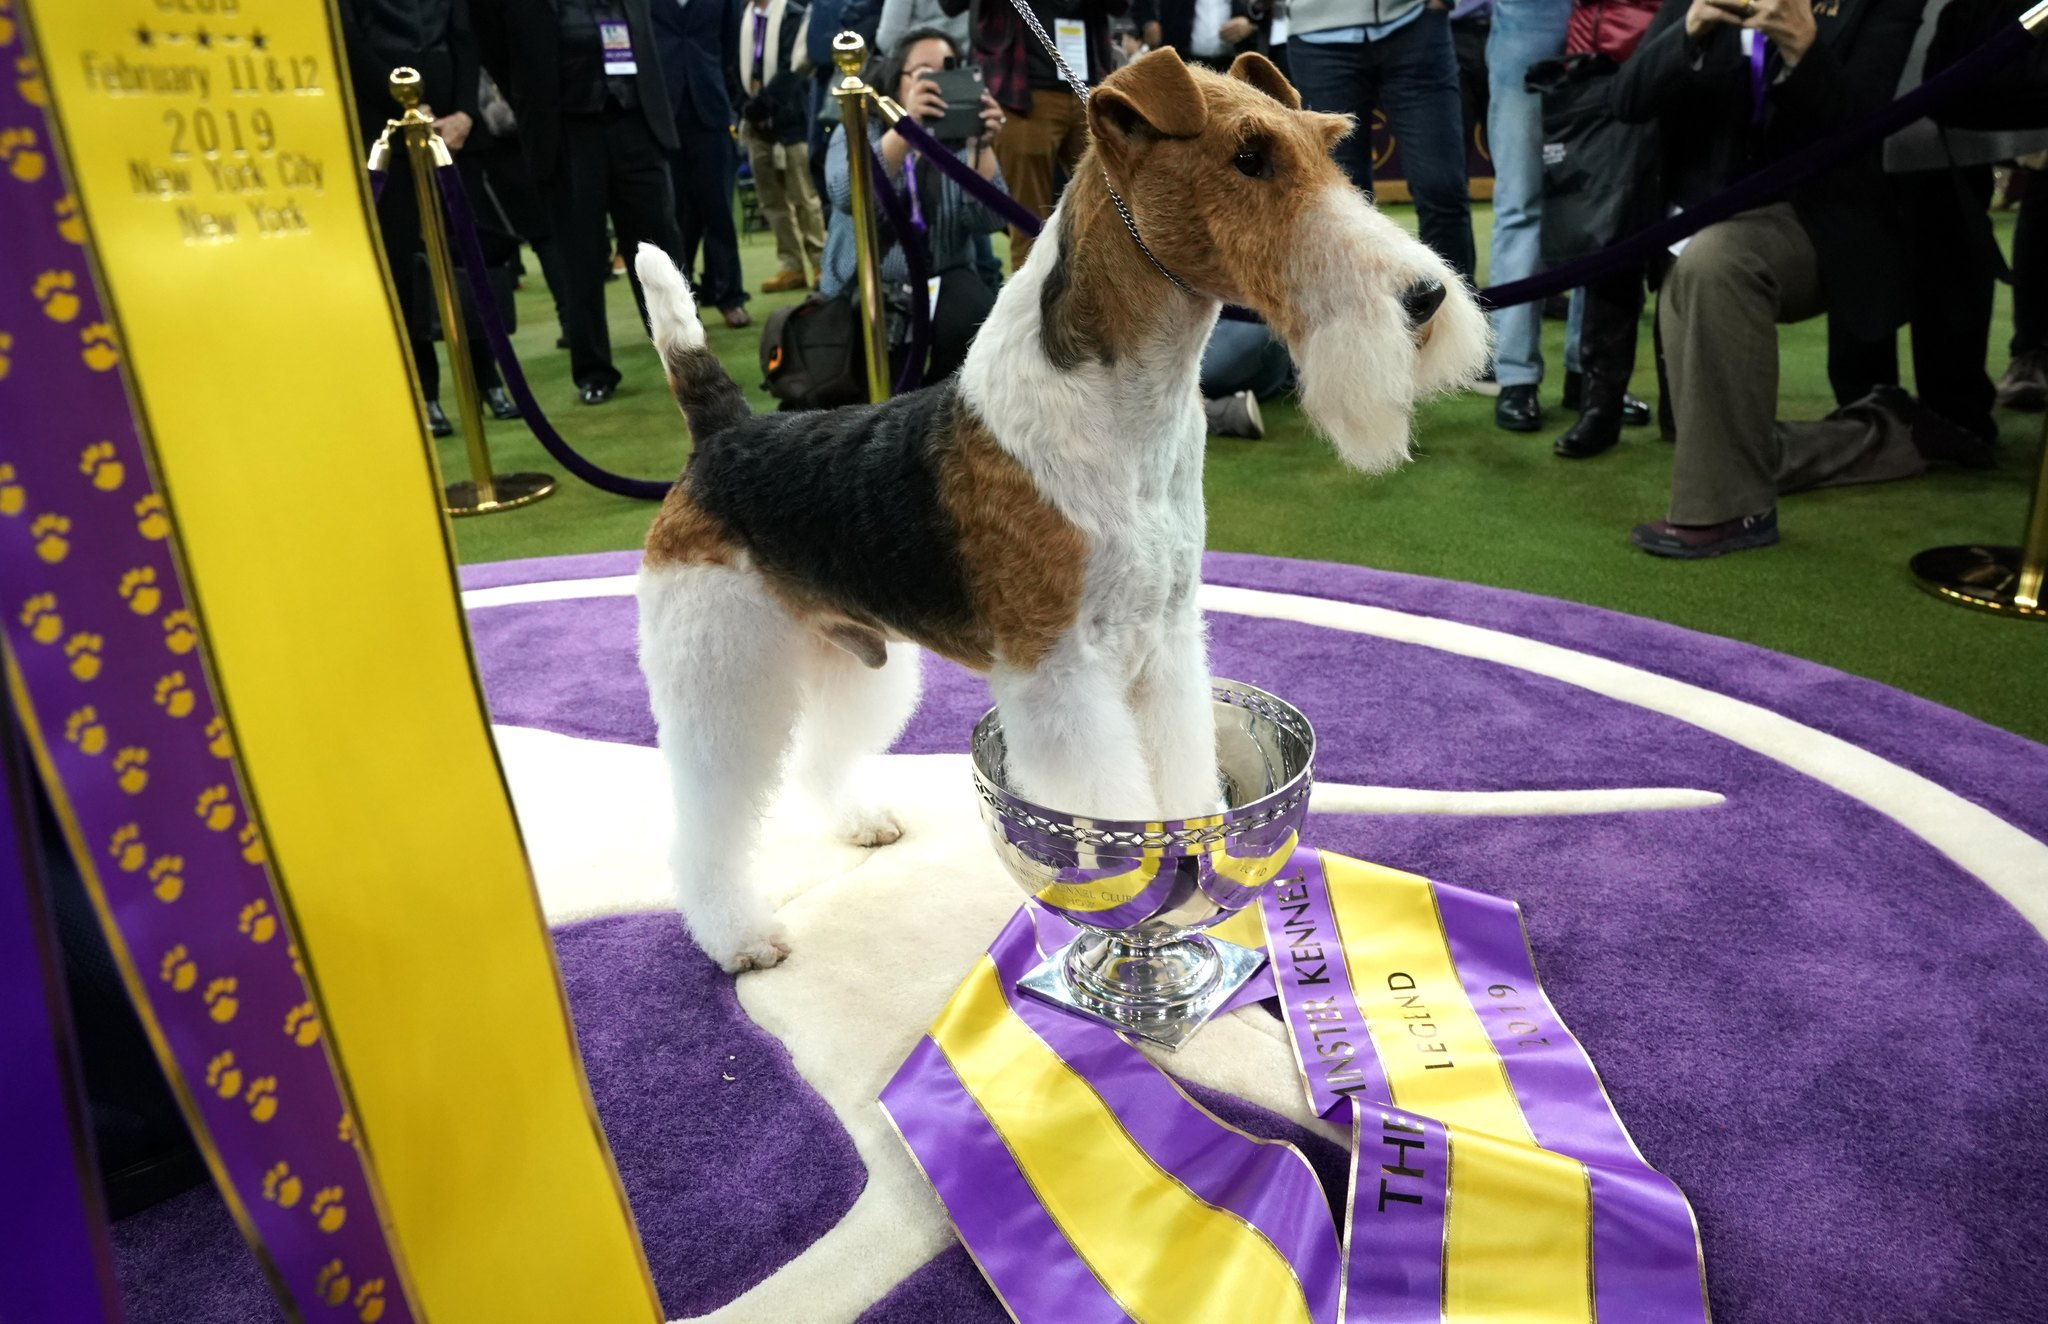 TV channels for Westminster Dog Show? Here's when and where